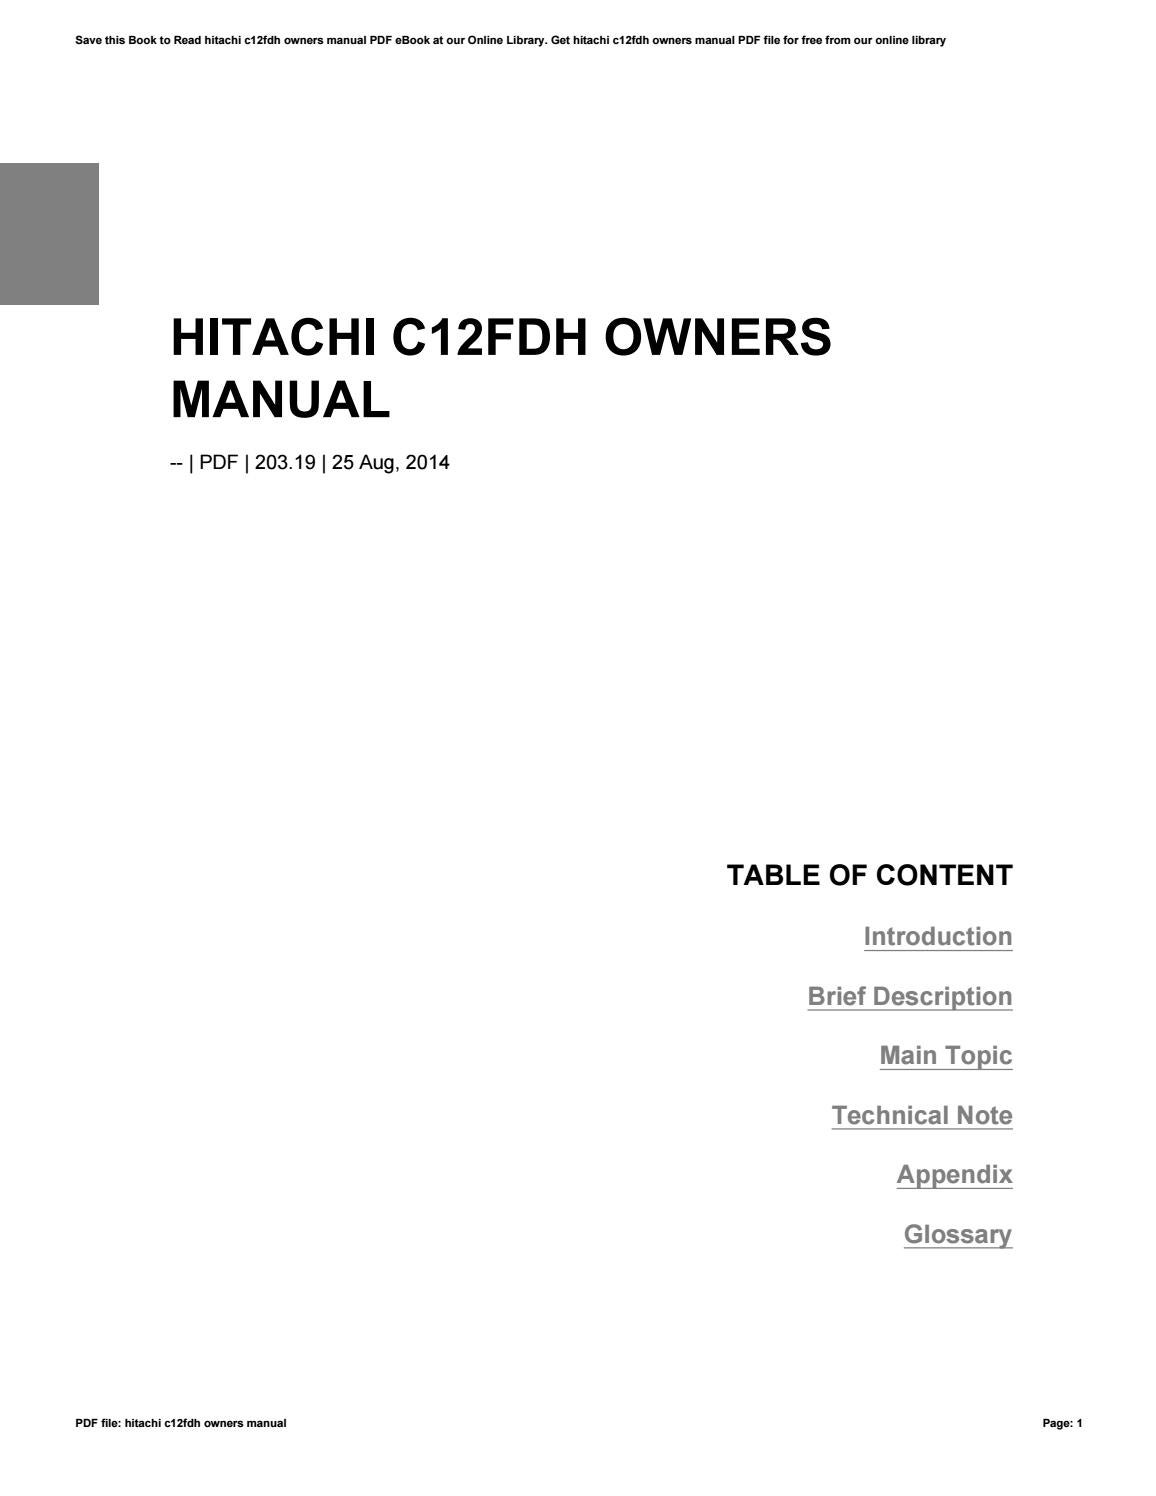 Hitachi manual pdf array hitachi c12fdh owners manual by squirtsnap92 issuu rh issuu fandeluxe Choice Image